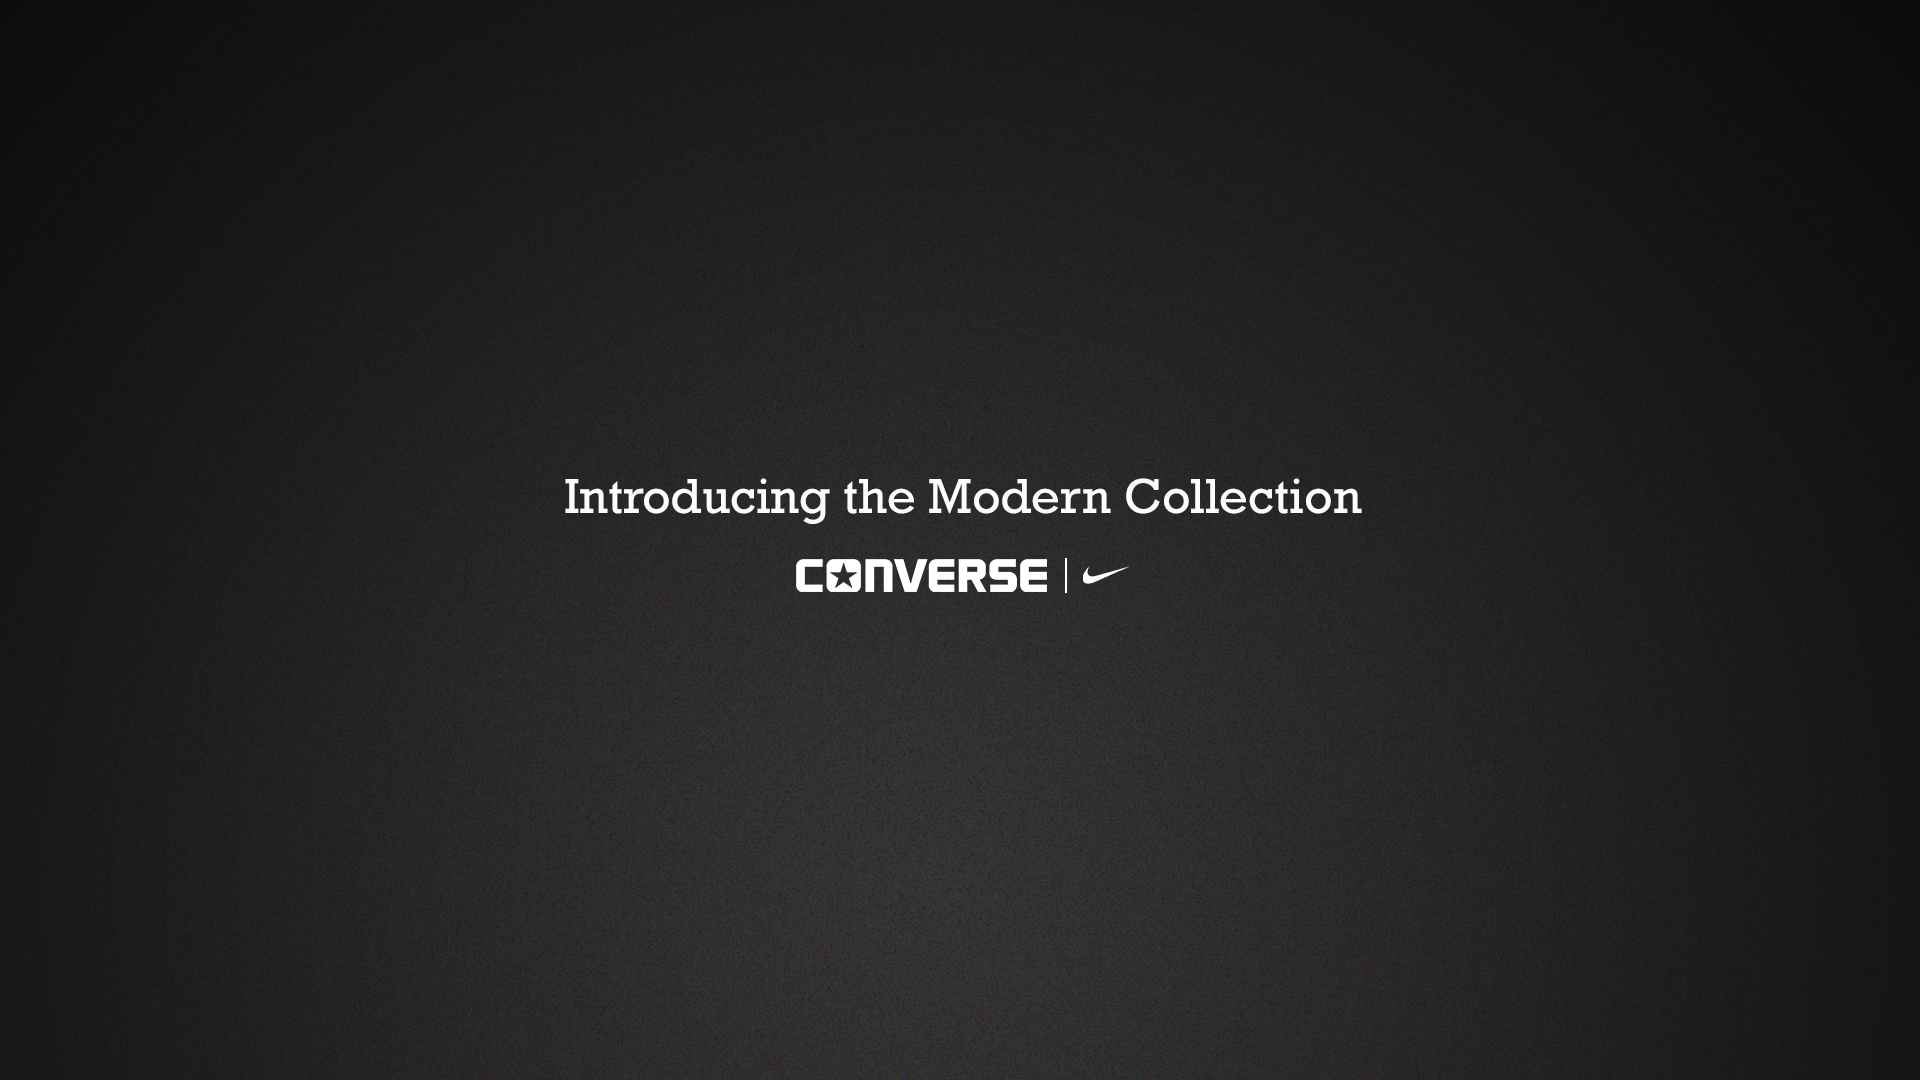 modern_collection_intro.png